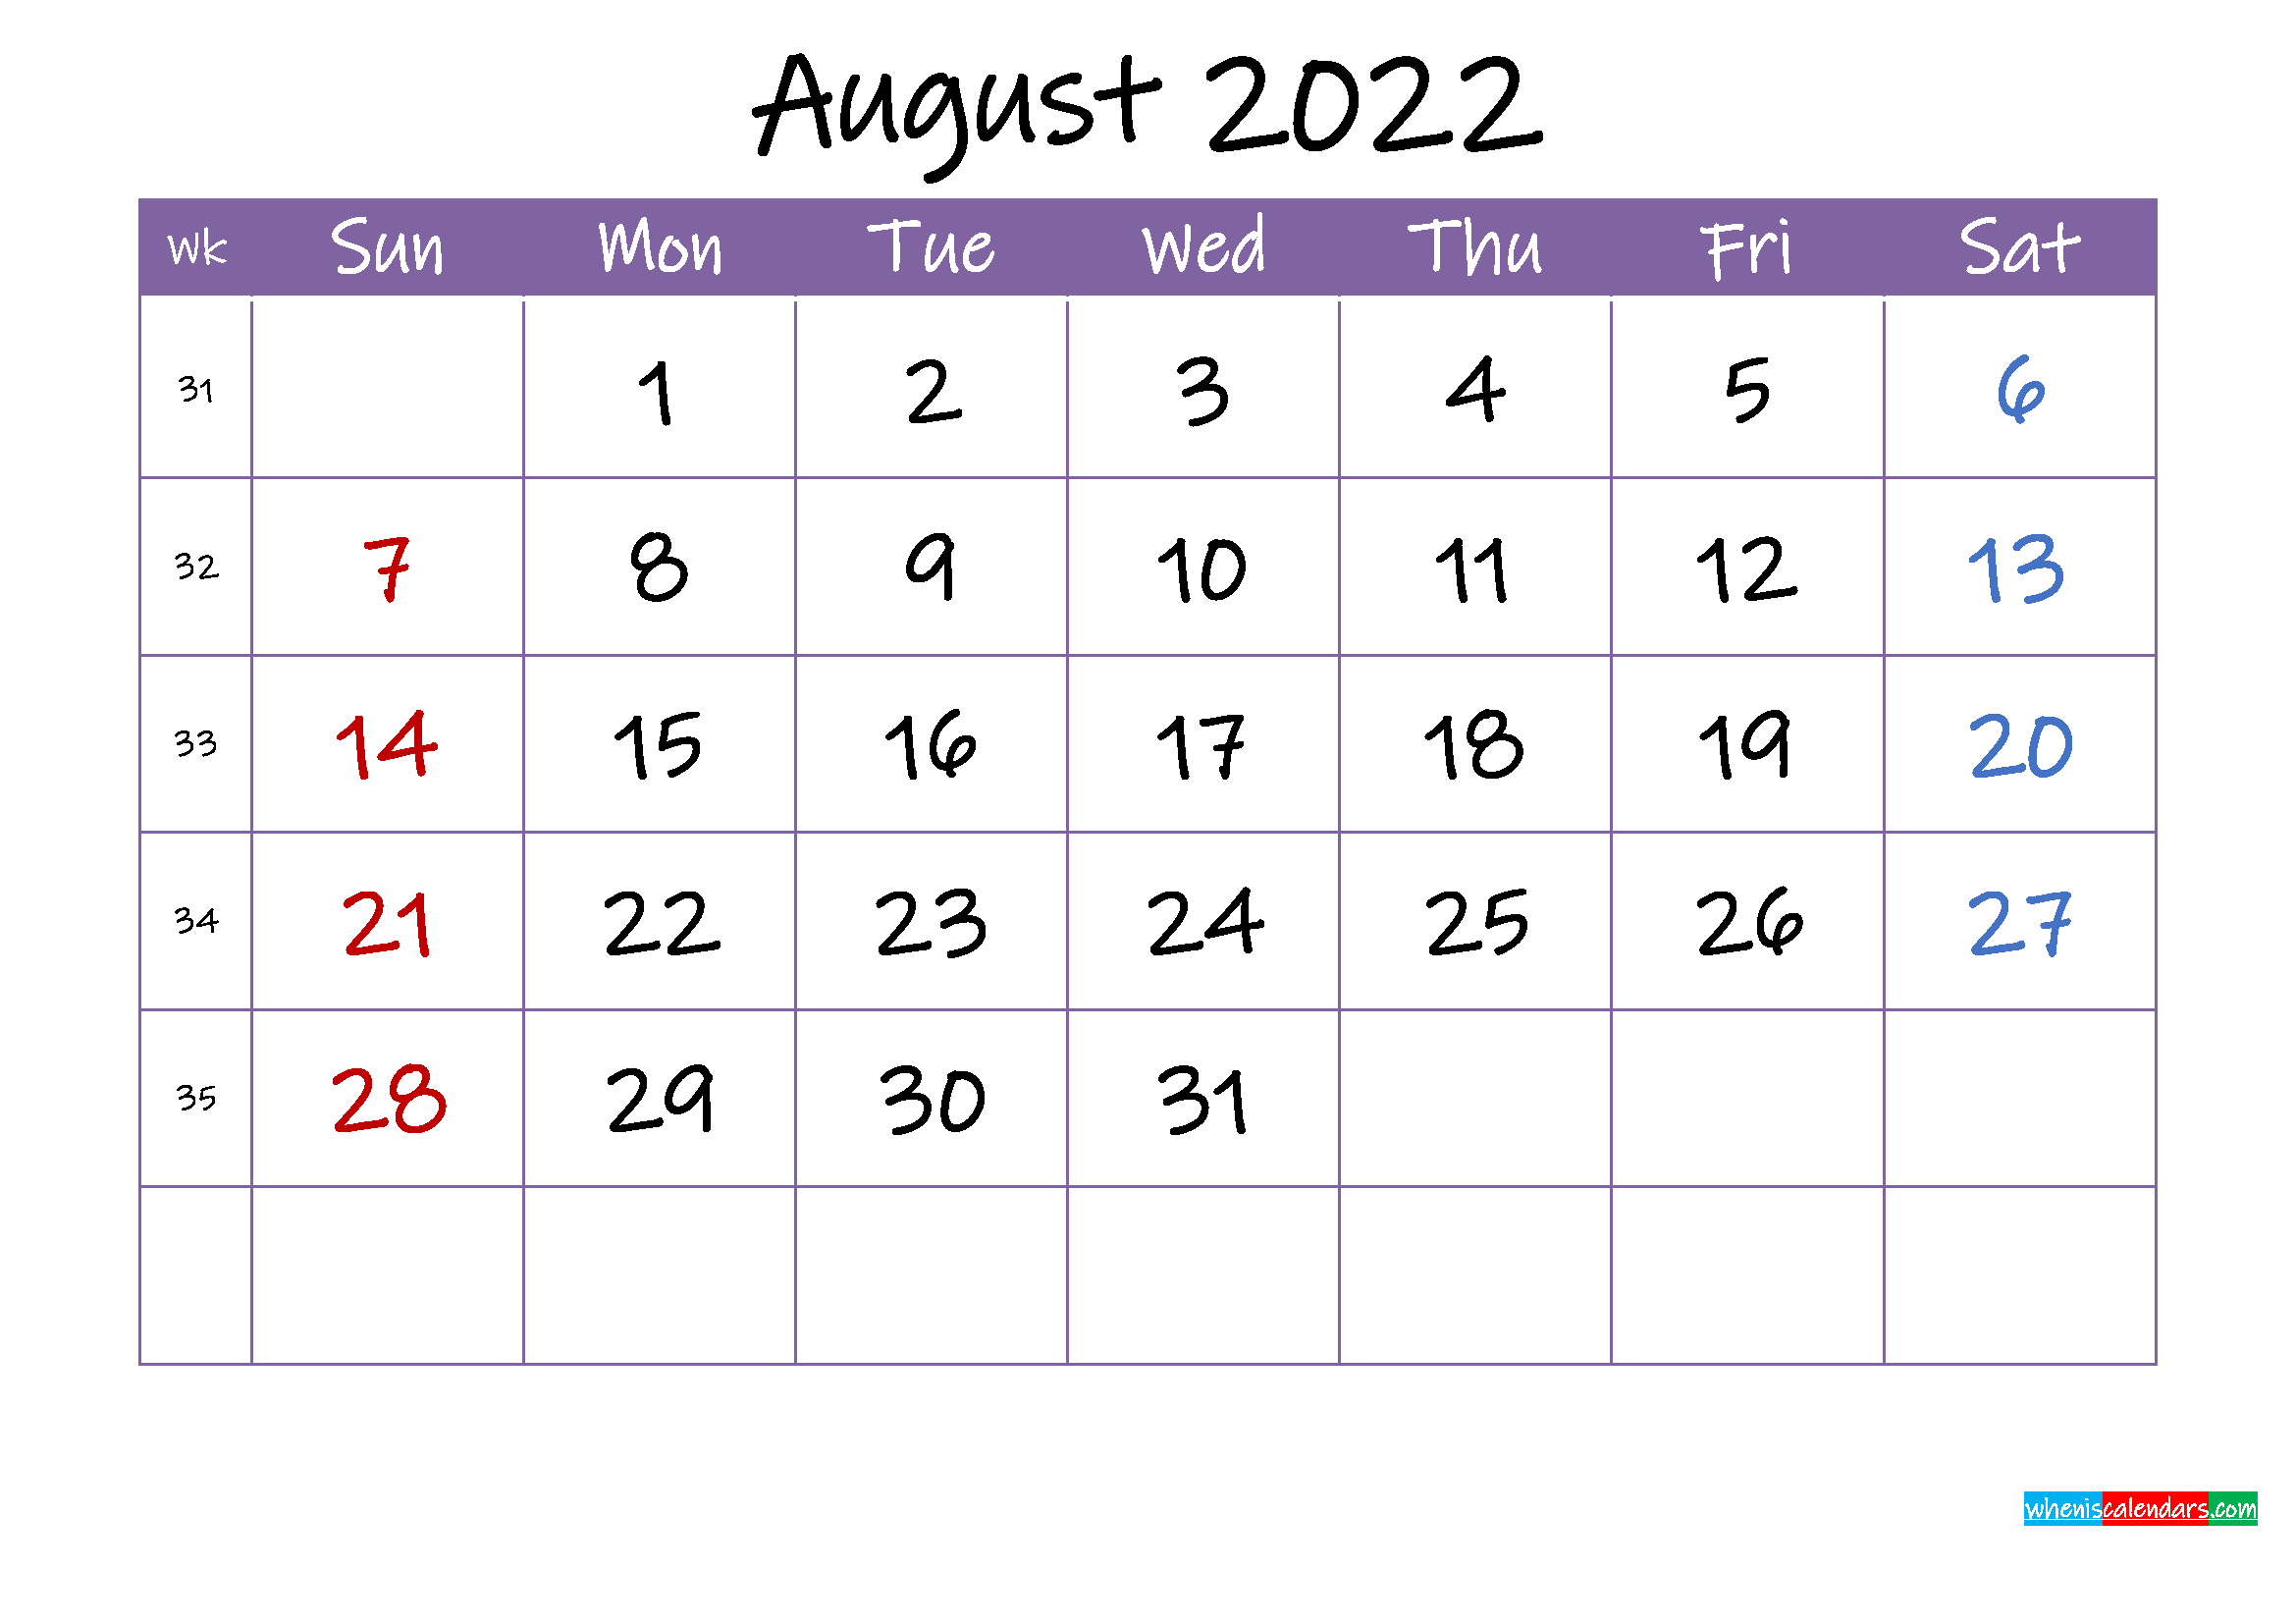 August 2022 Calendar with Holidays Printable - Template ...